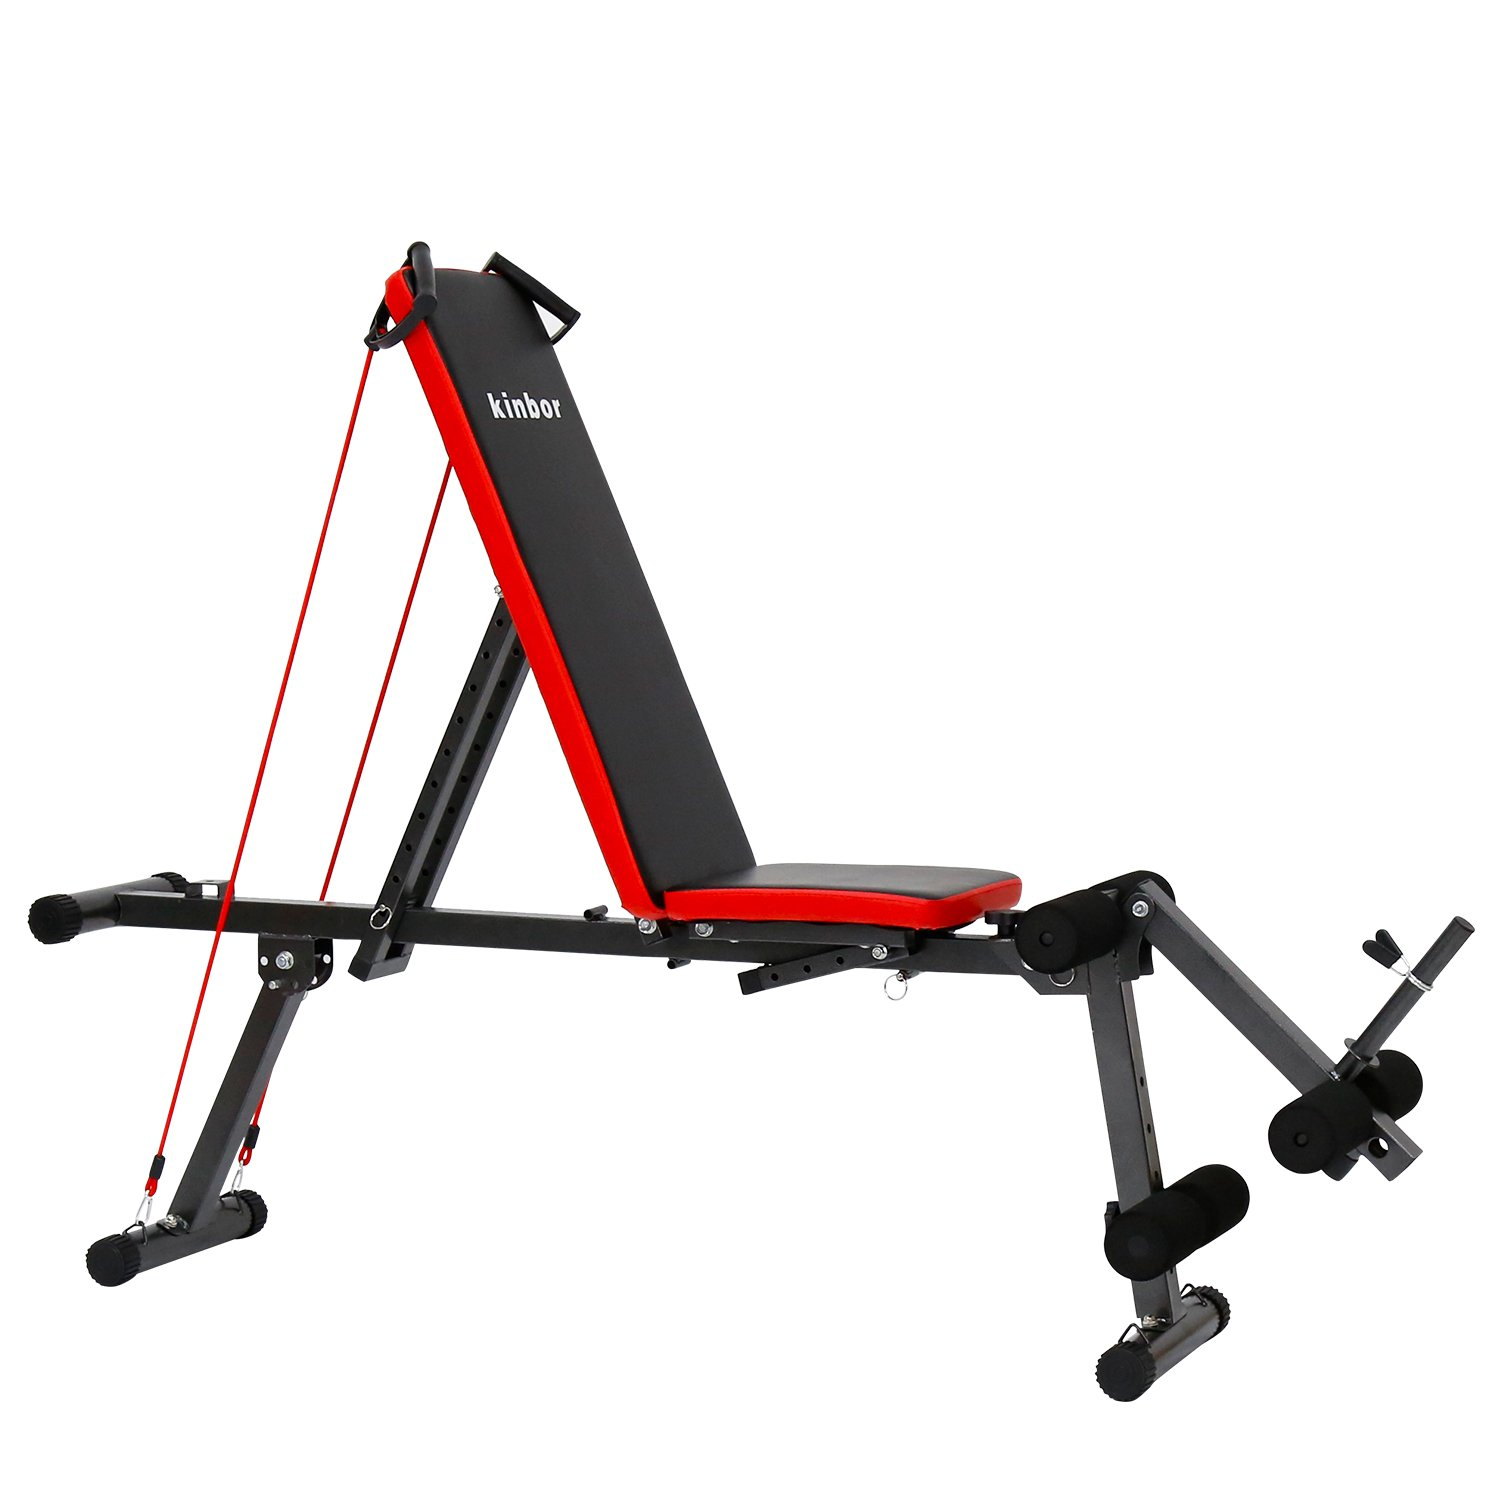 Peach Tree Multi-Purpose Adjustable Utility Sit-up Bench Board for Full Body Workout by Peachtree Press Inc